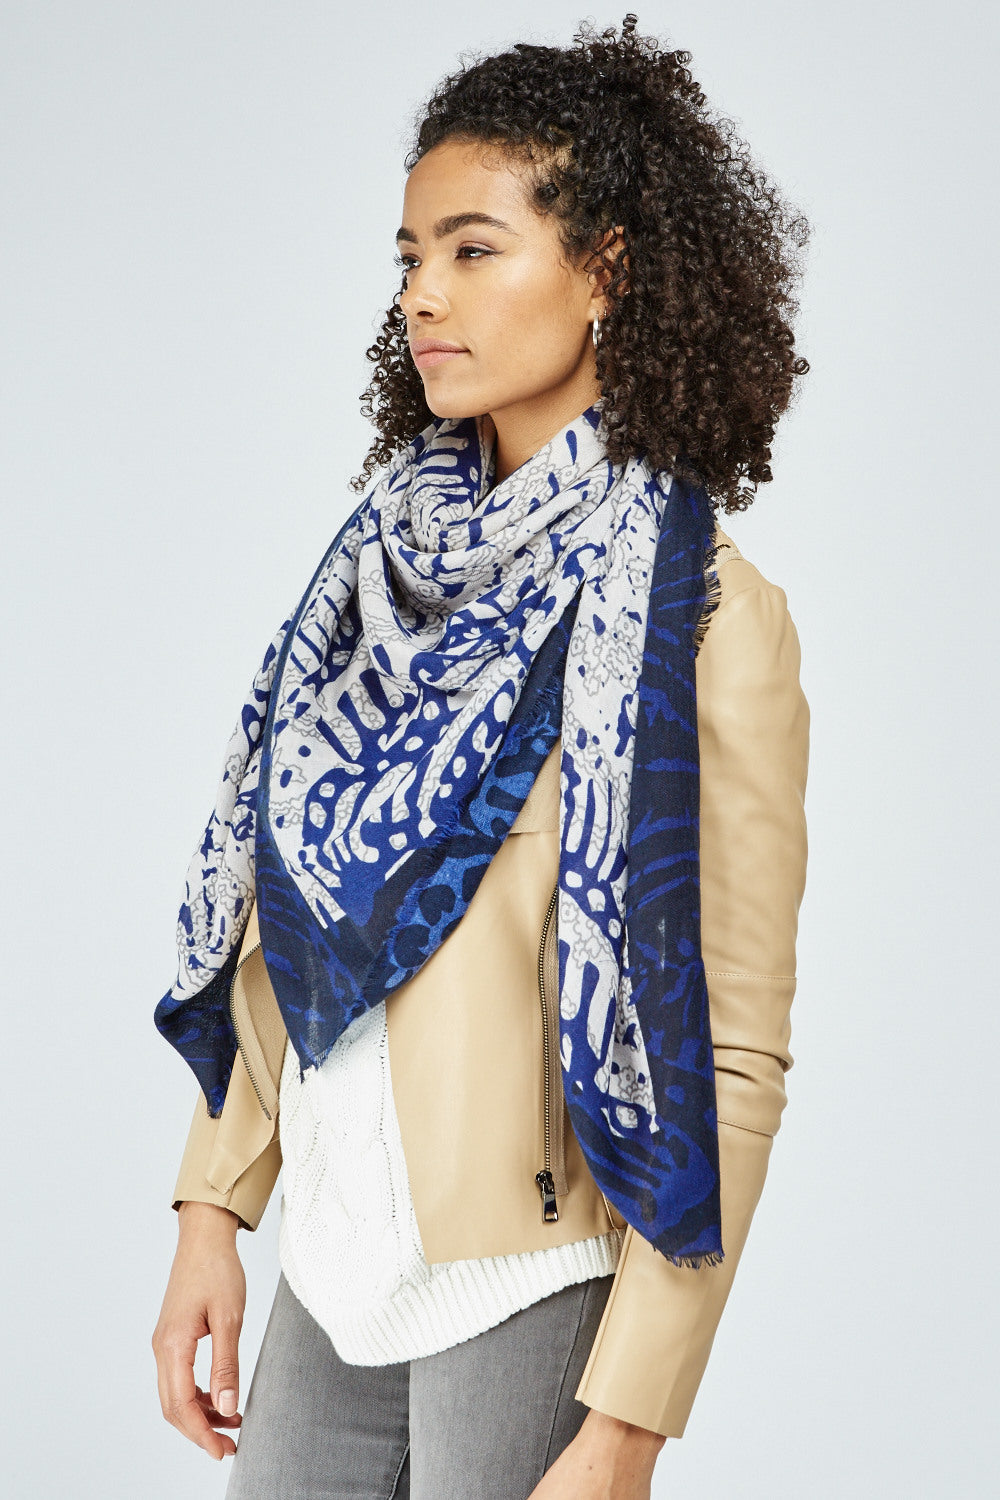 Adwoa All Over Mix Abstract Pattern Print Scarf - Woven Trends